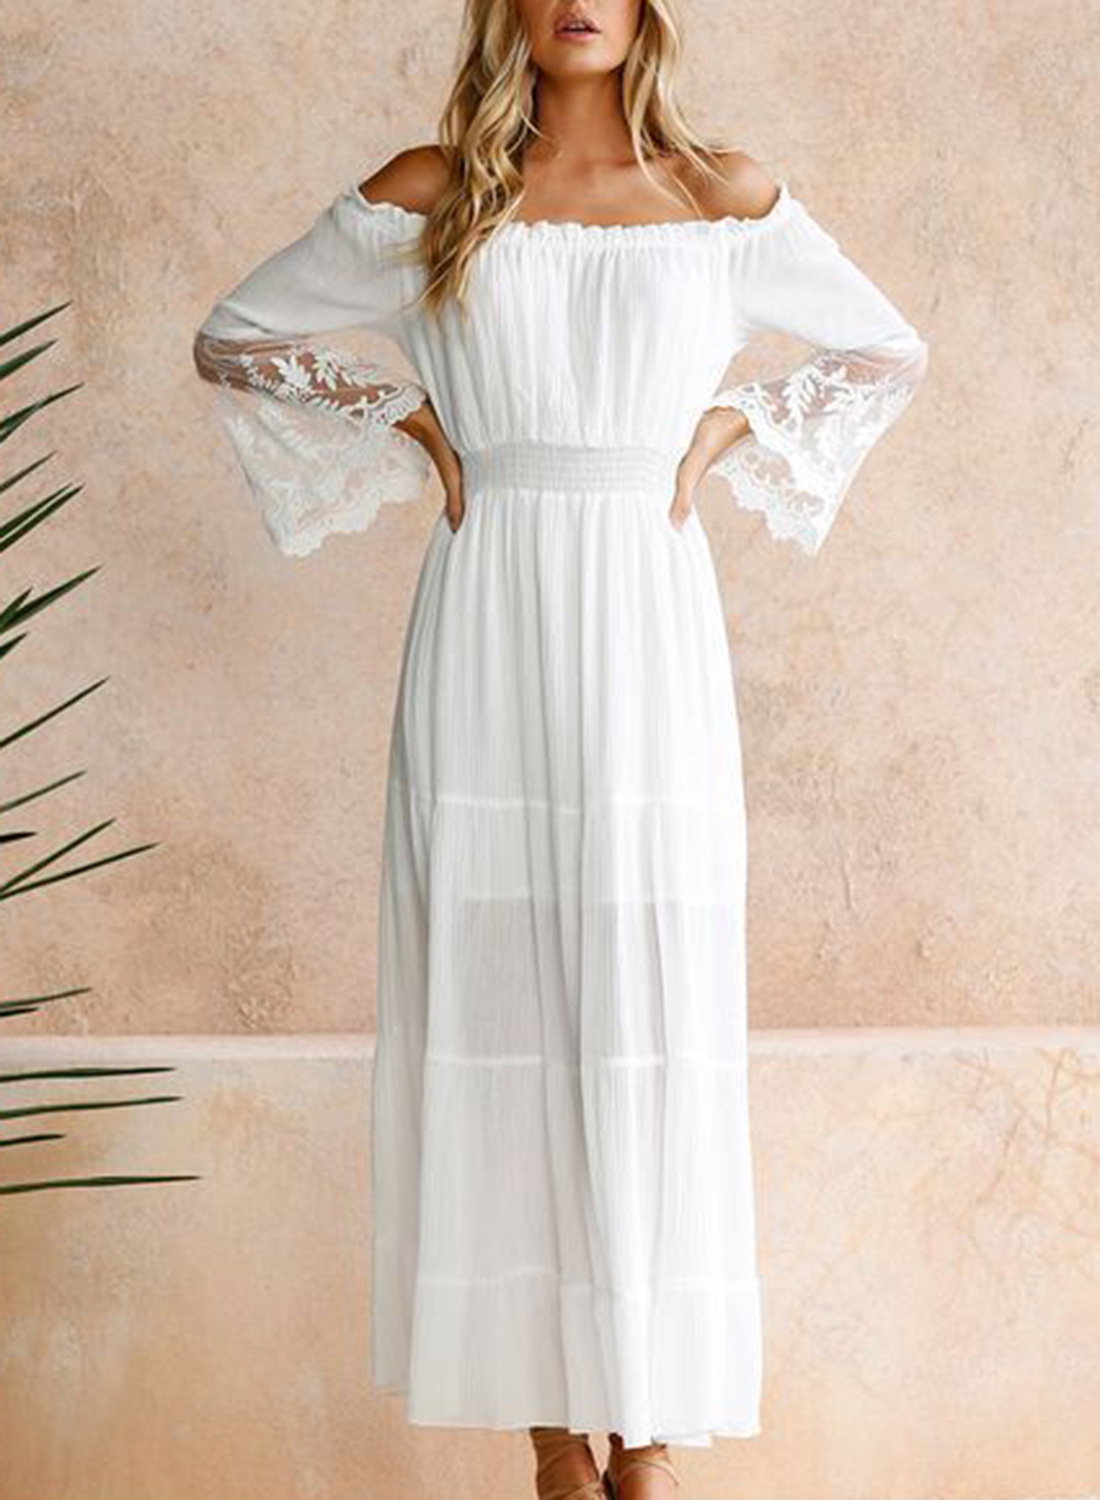 one-shoulder autumn new lace stitching embroidered hollow dress NSSI2441